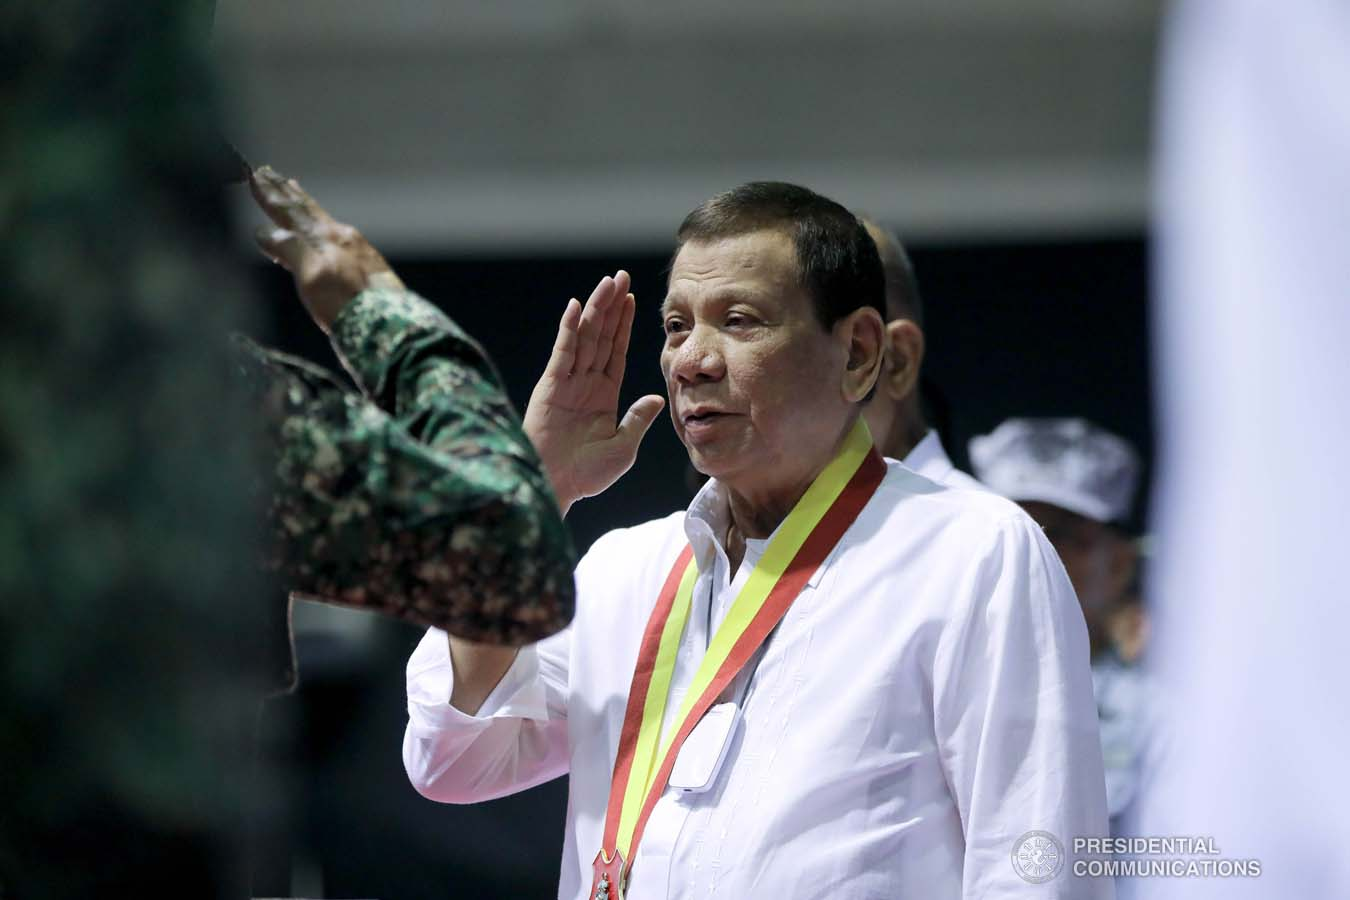 President Rodrigo Roa Duterte salutes one of the personnel of the Philippine Marine Corps, who was conferred the Order of Lapu-Lapu Rank of Kamagi during his visit to the PMC headquarters at Fort Bonifacio in Taguig City on January 13, 2020. The President honored the PMC personnel who took part in the liberation of Marawi City from the terrorists. ALFRED FRIAS/PRESIDENTIAL PHOTO